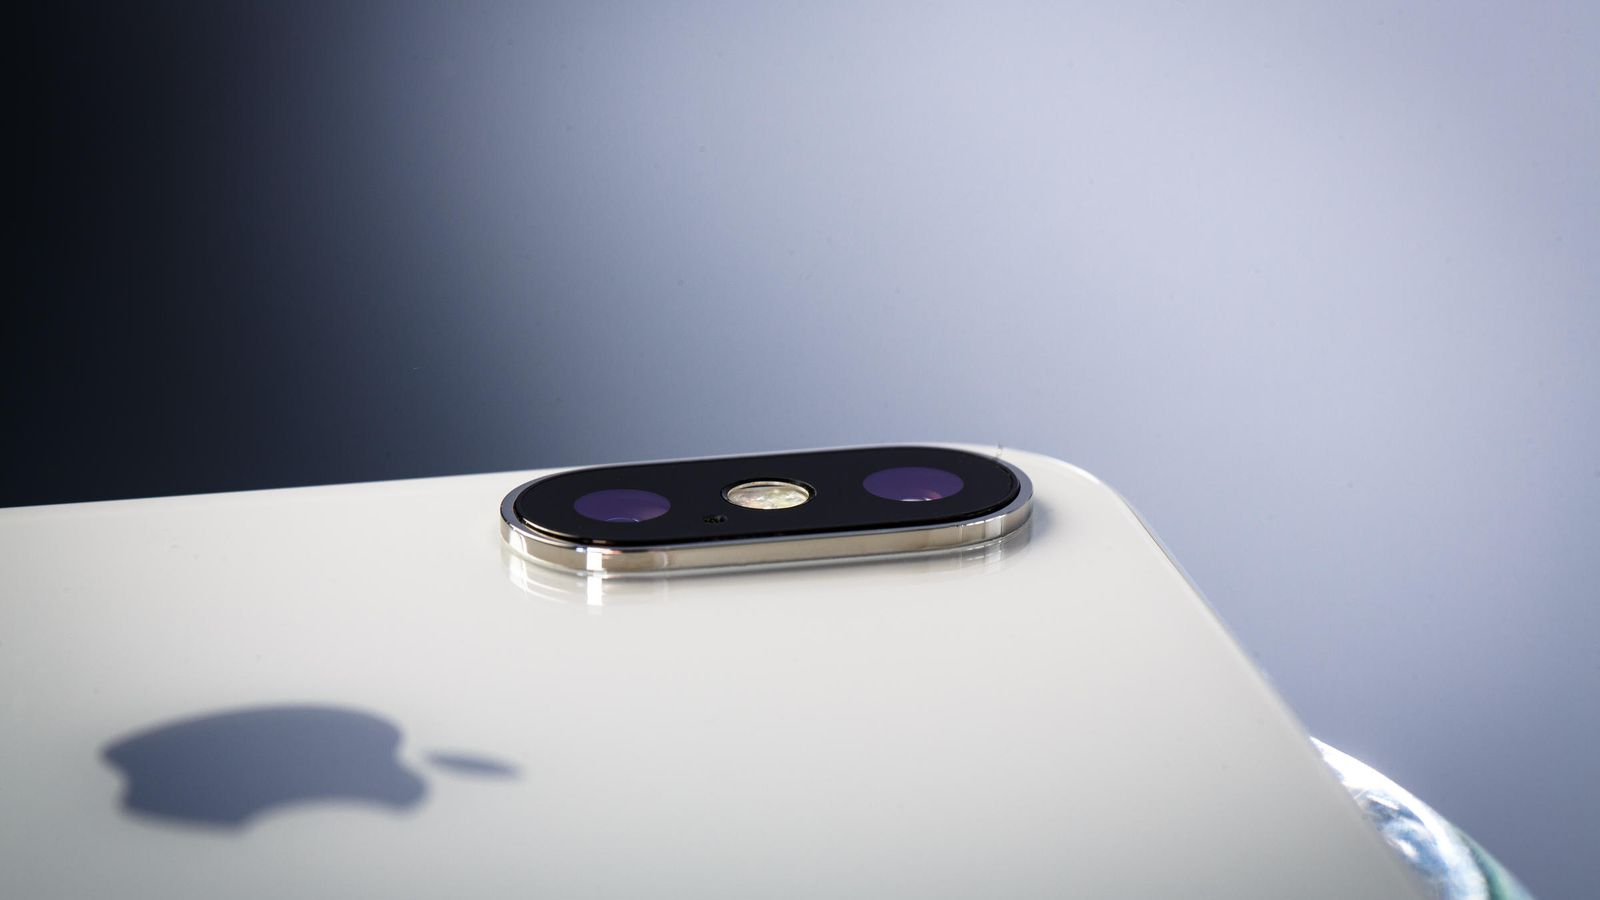 A rumored three-camera iPhone just got way more likely